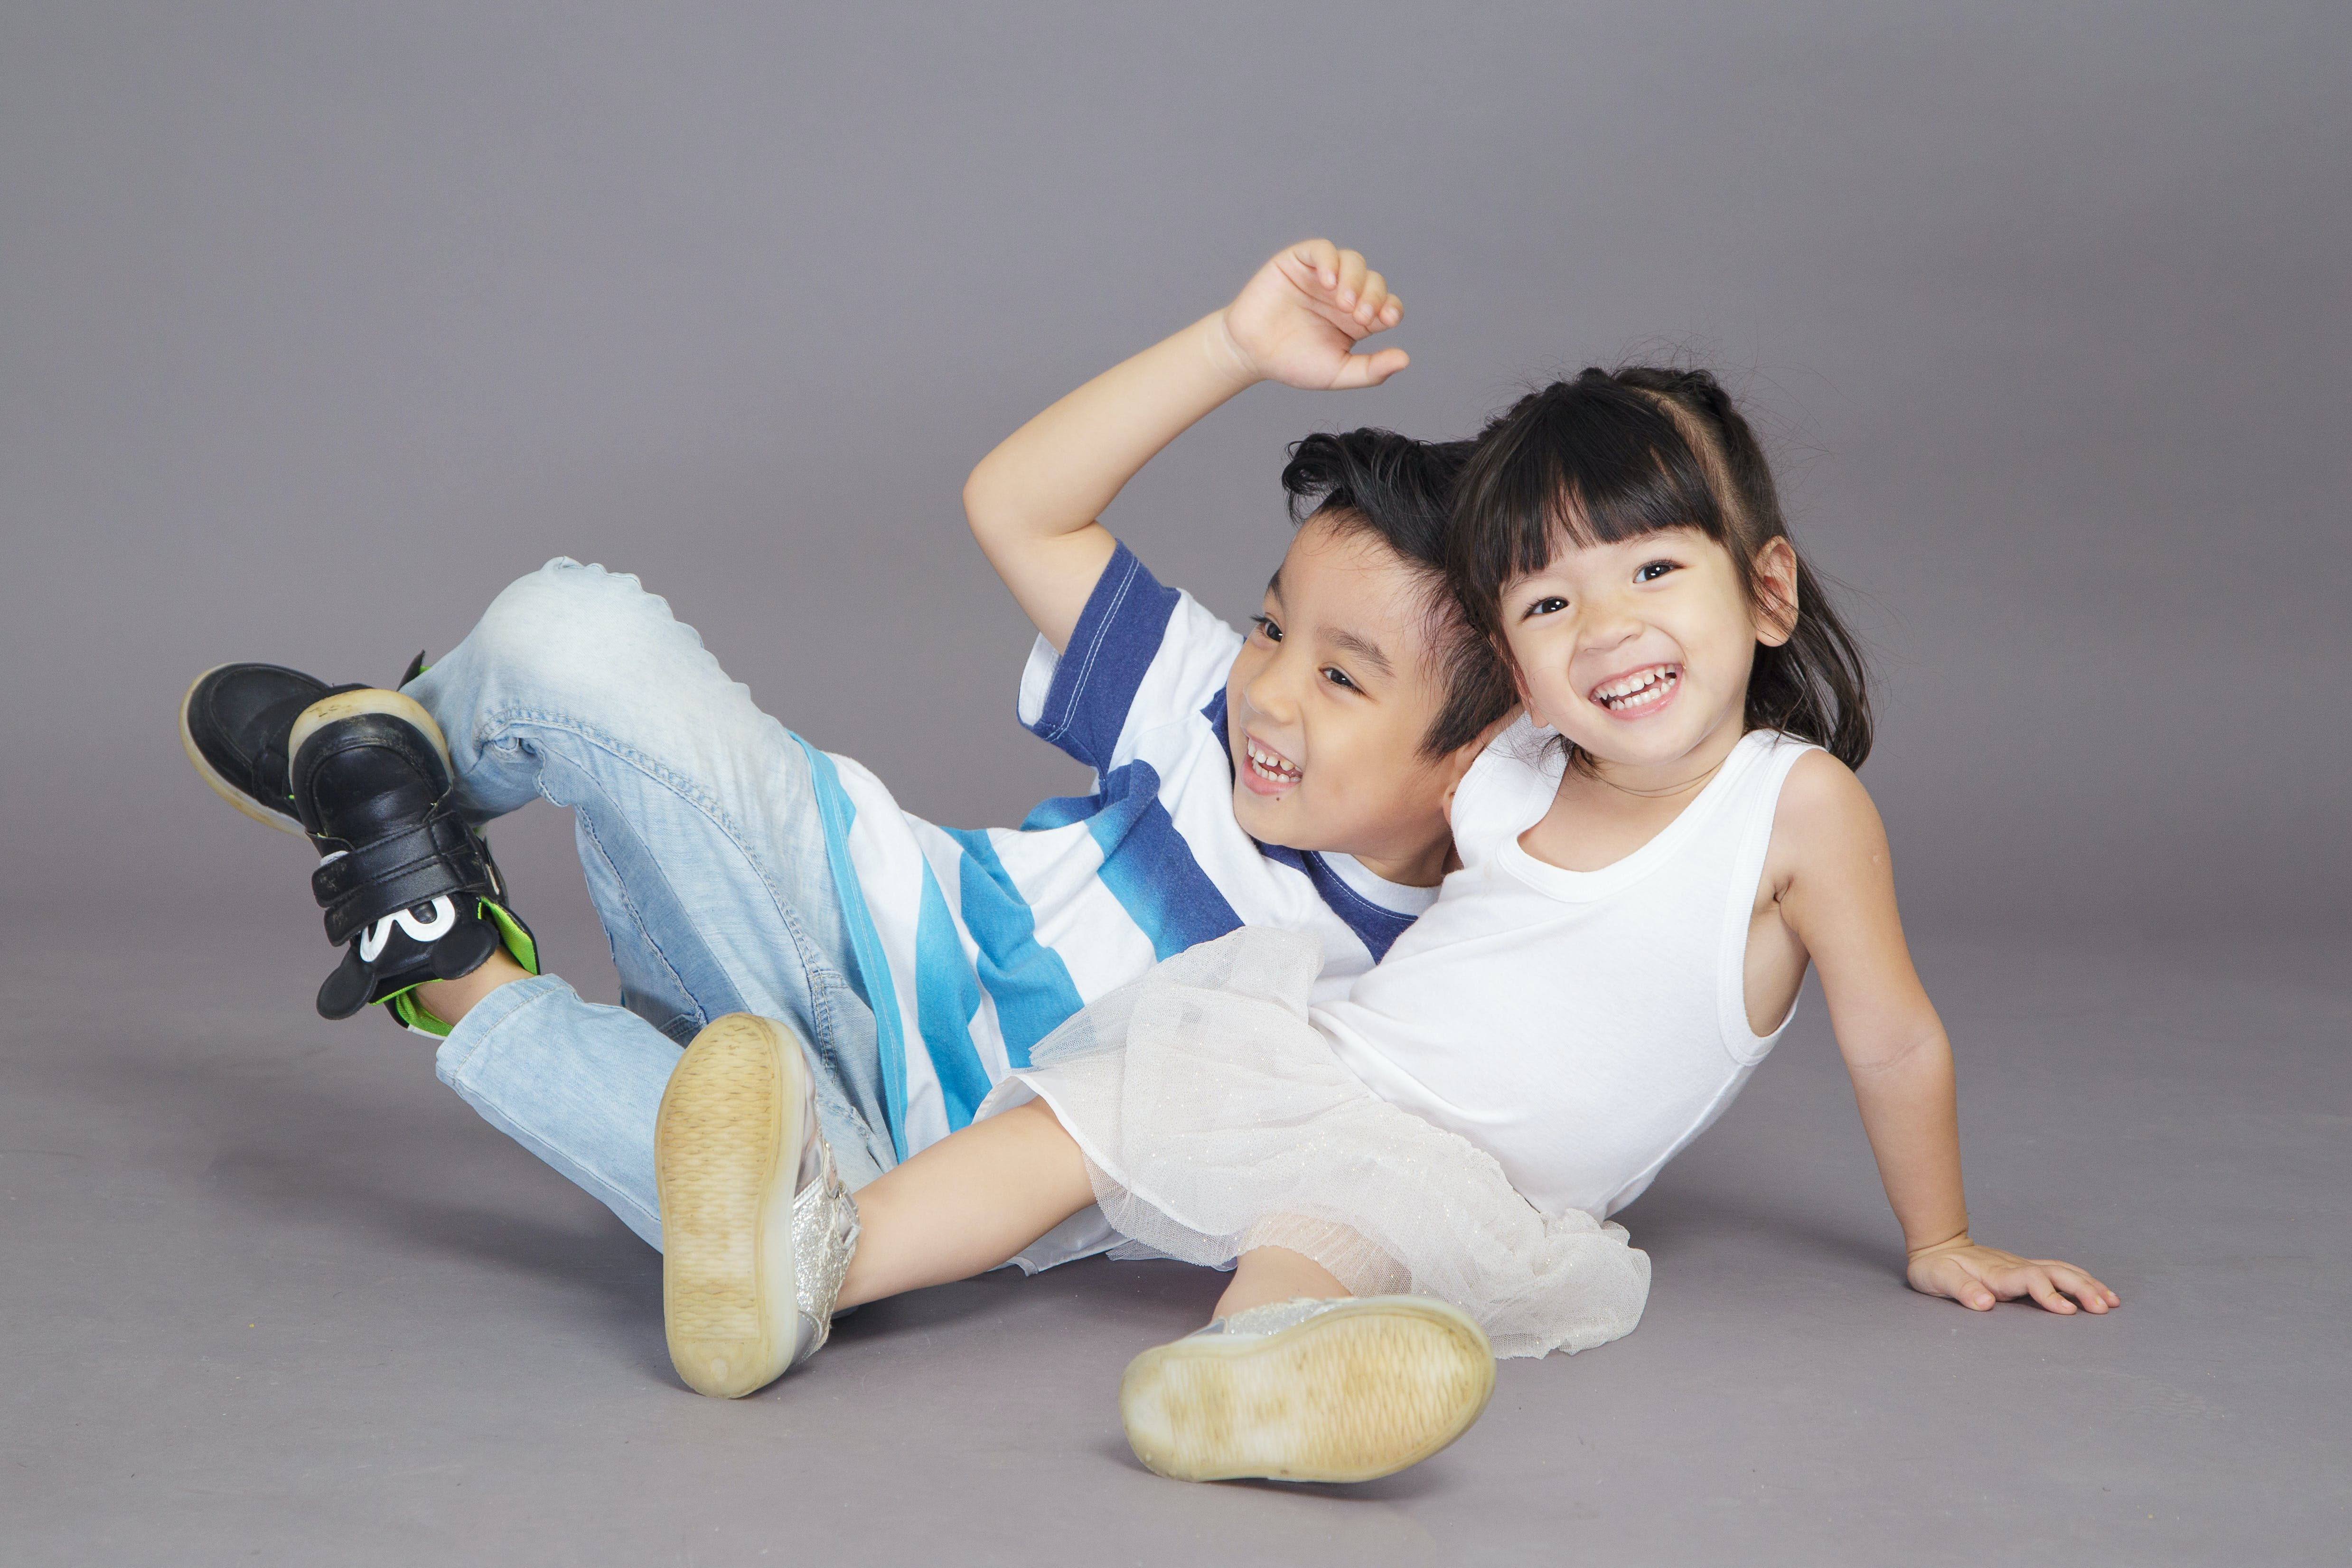 Boy and Girl Taking Picture